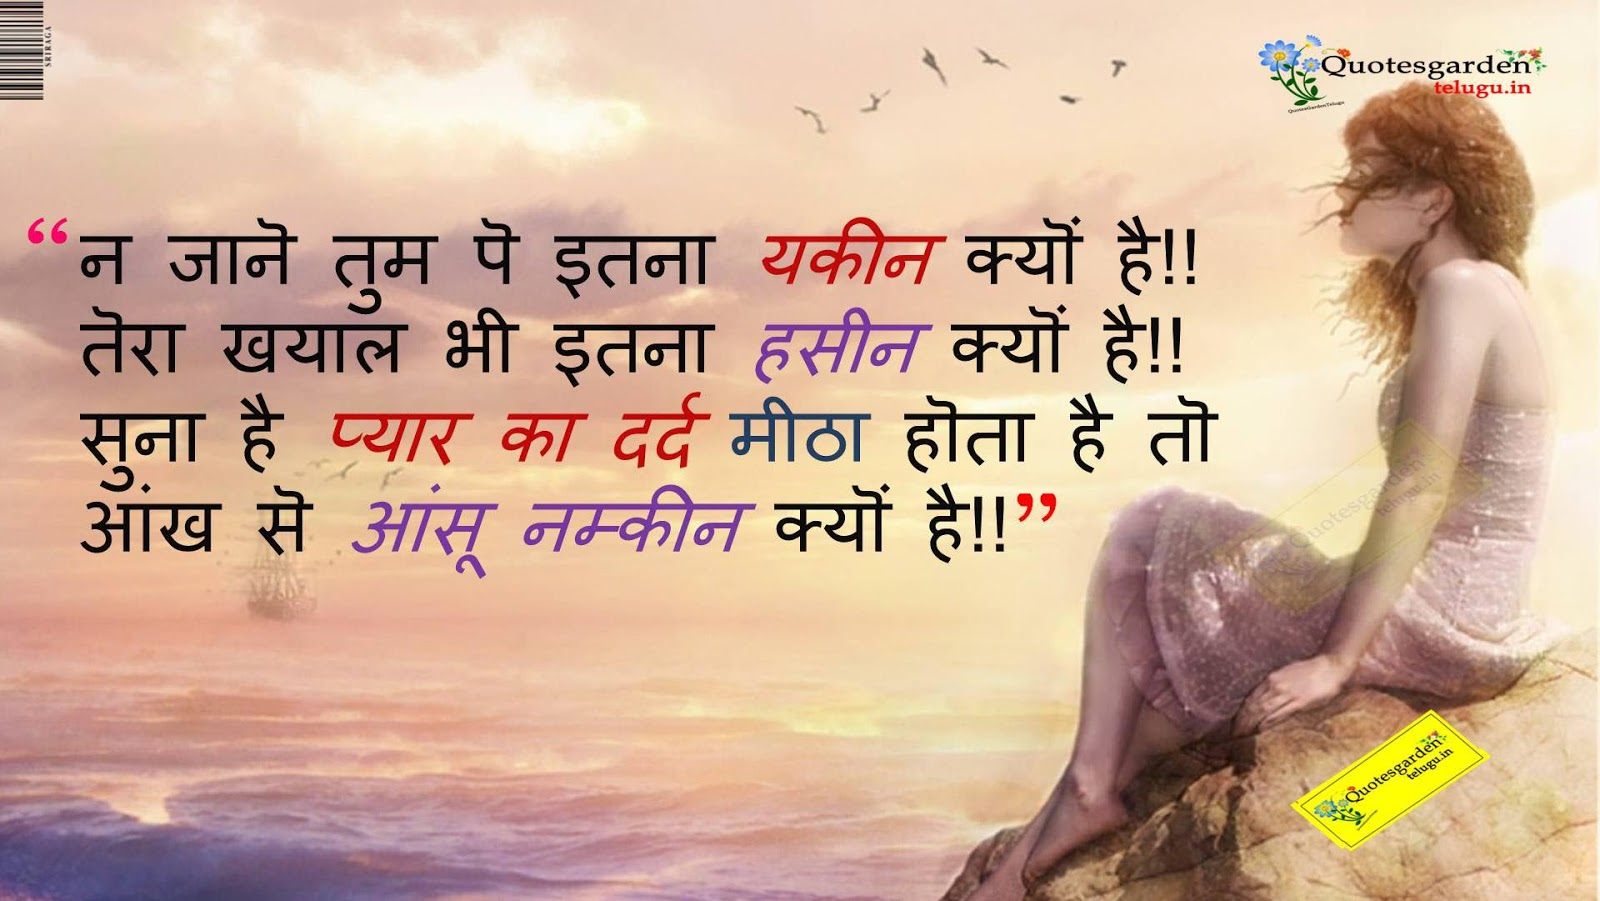 49 quotes best love quotes in hindi best hindi love quotes